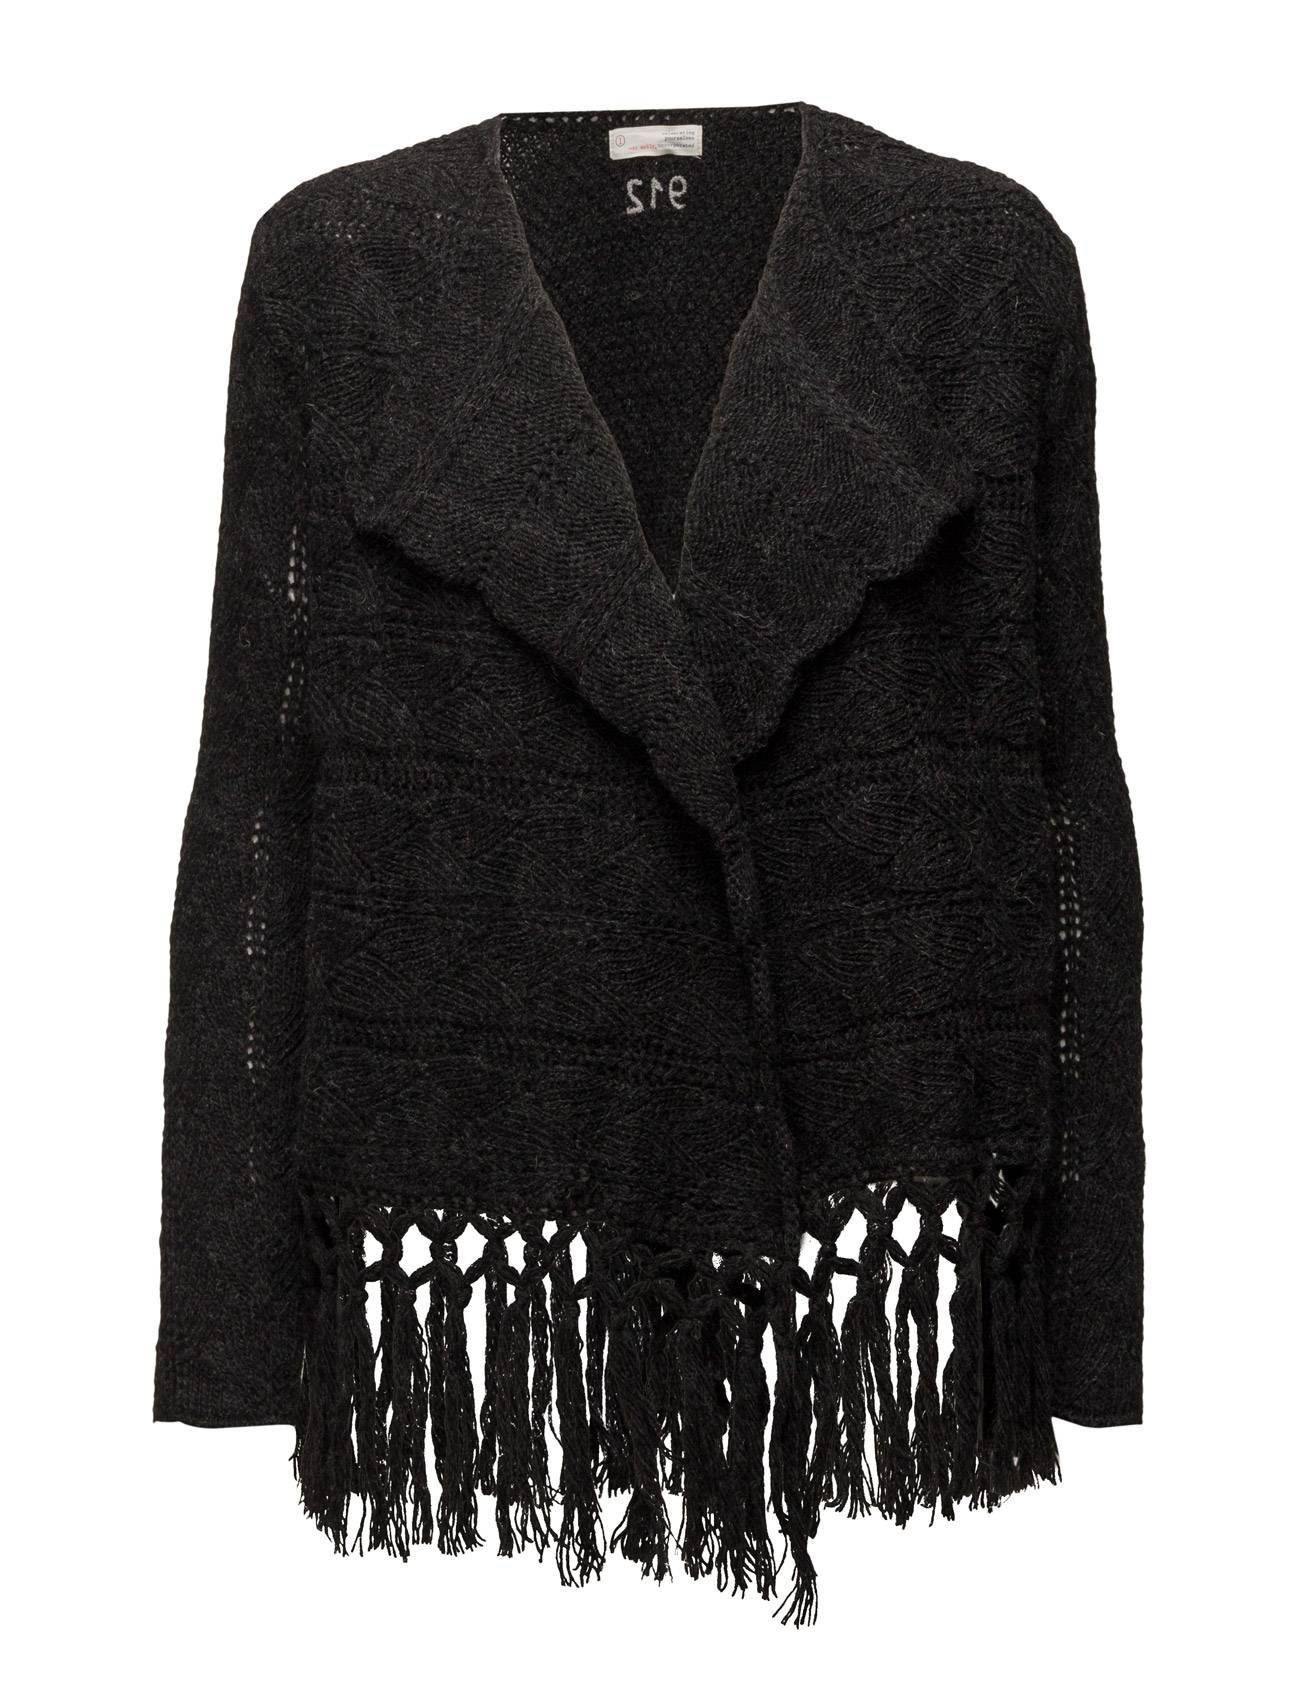 ODD MOLLY Yes Yes Yes Wrap Cardigan